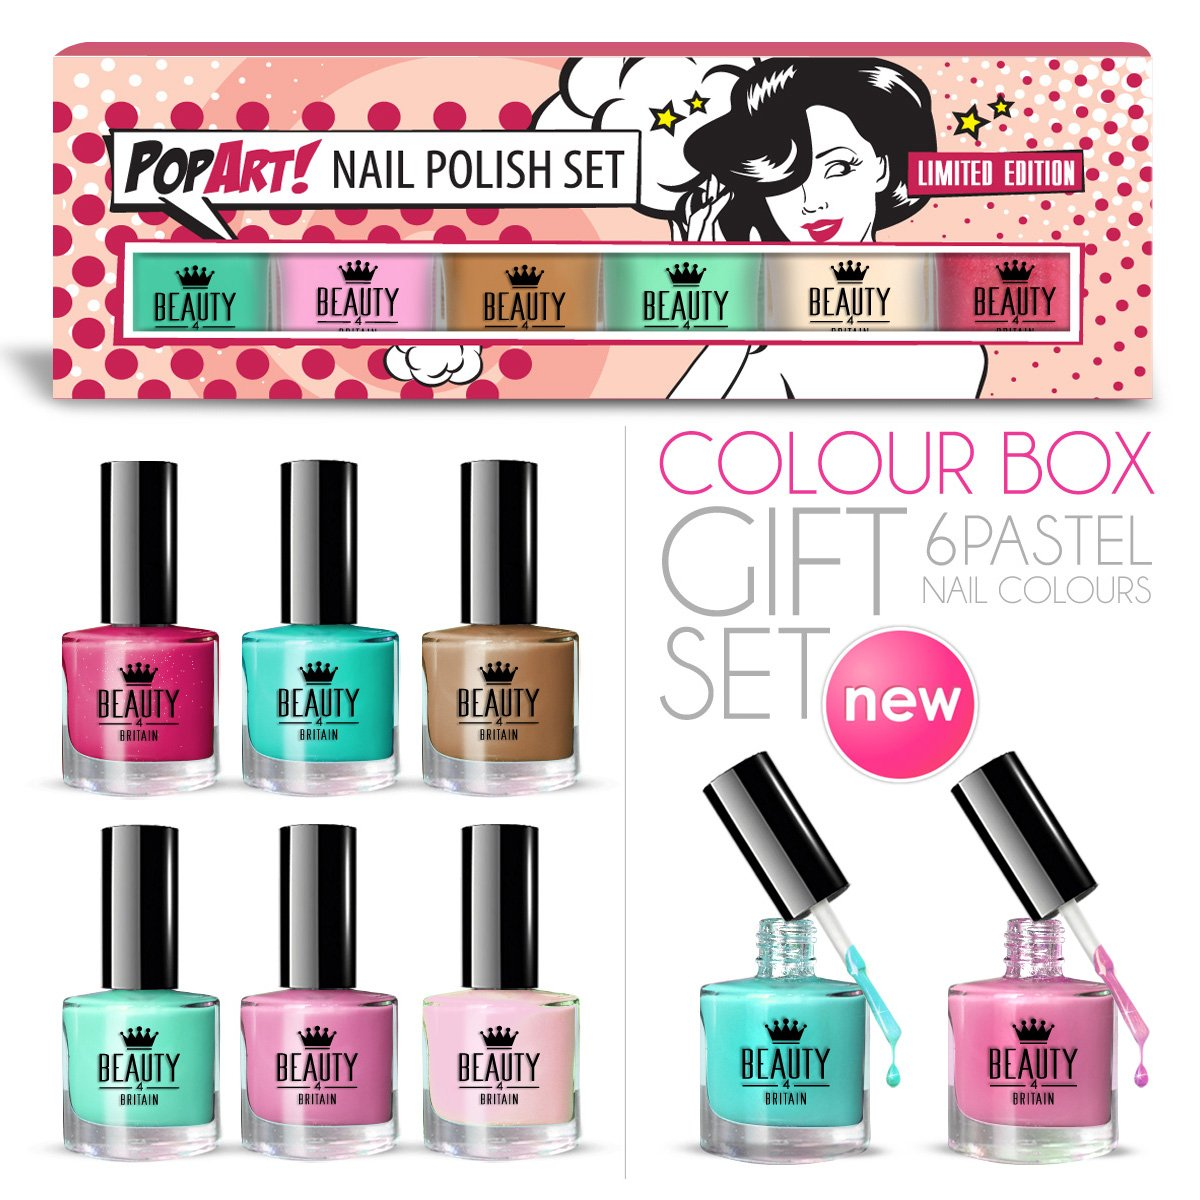 6 x Luxury Nail Polish 6 Different Pastel PopArt Colours Gift Box High Quality B4B